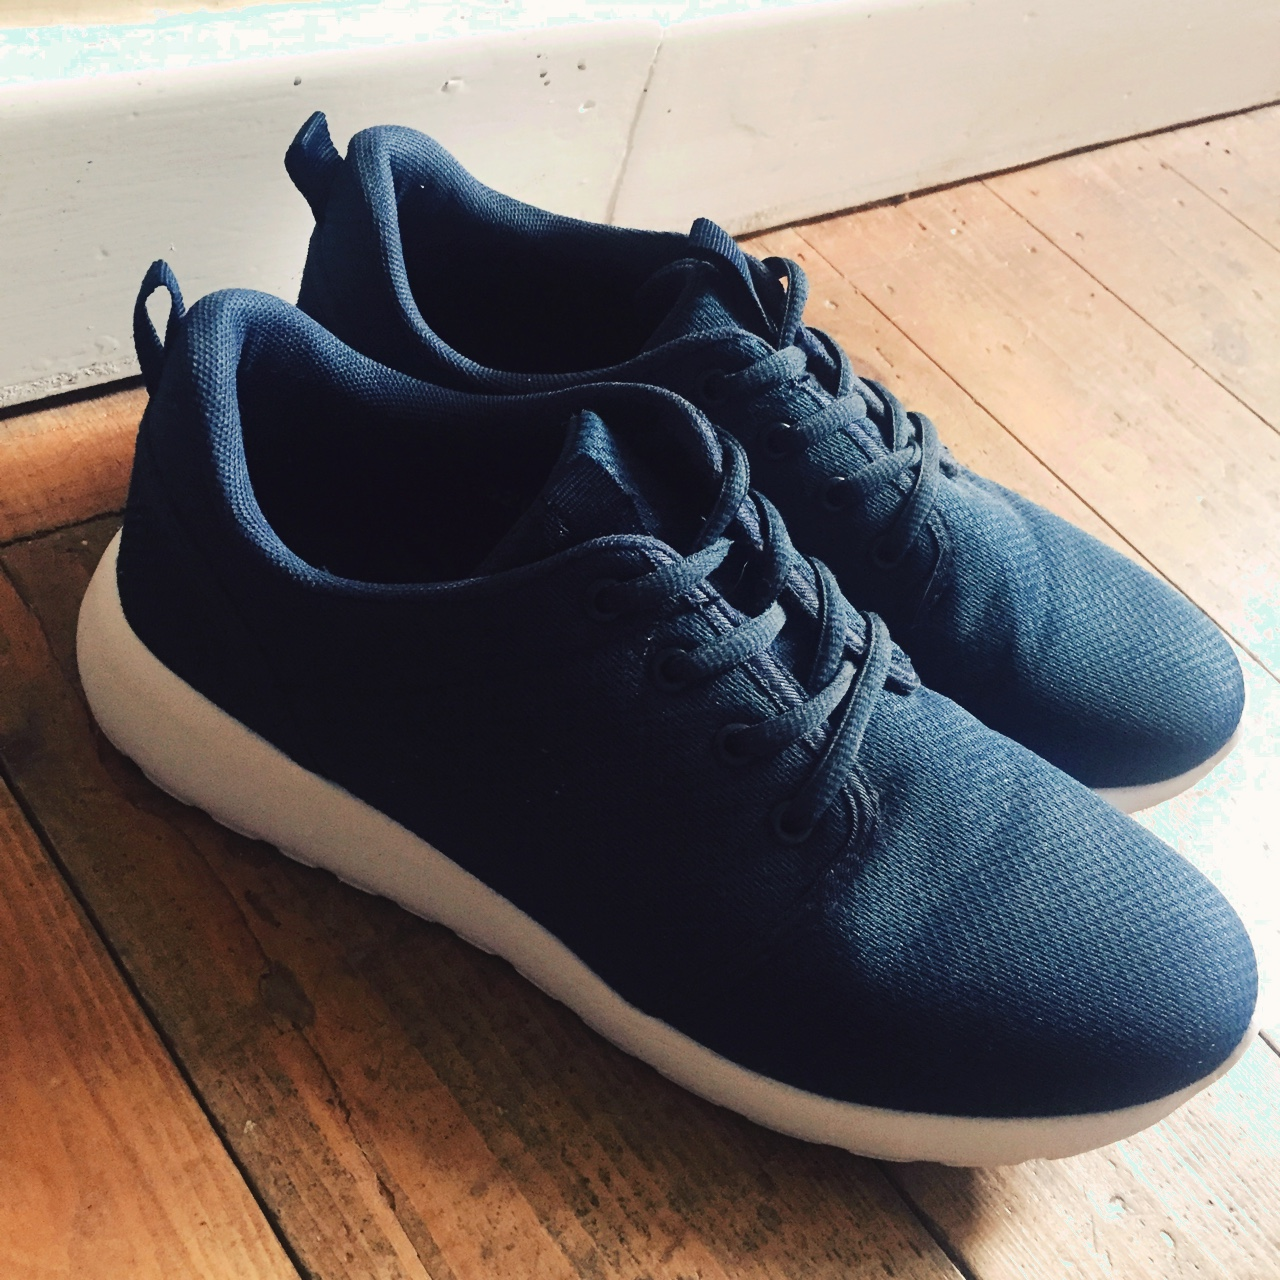 DEK Superlight navy trainer shoes with